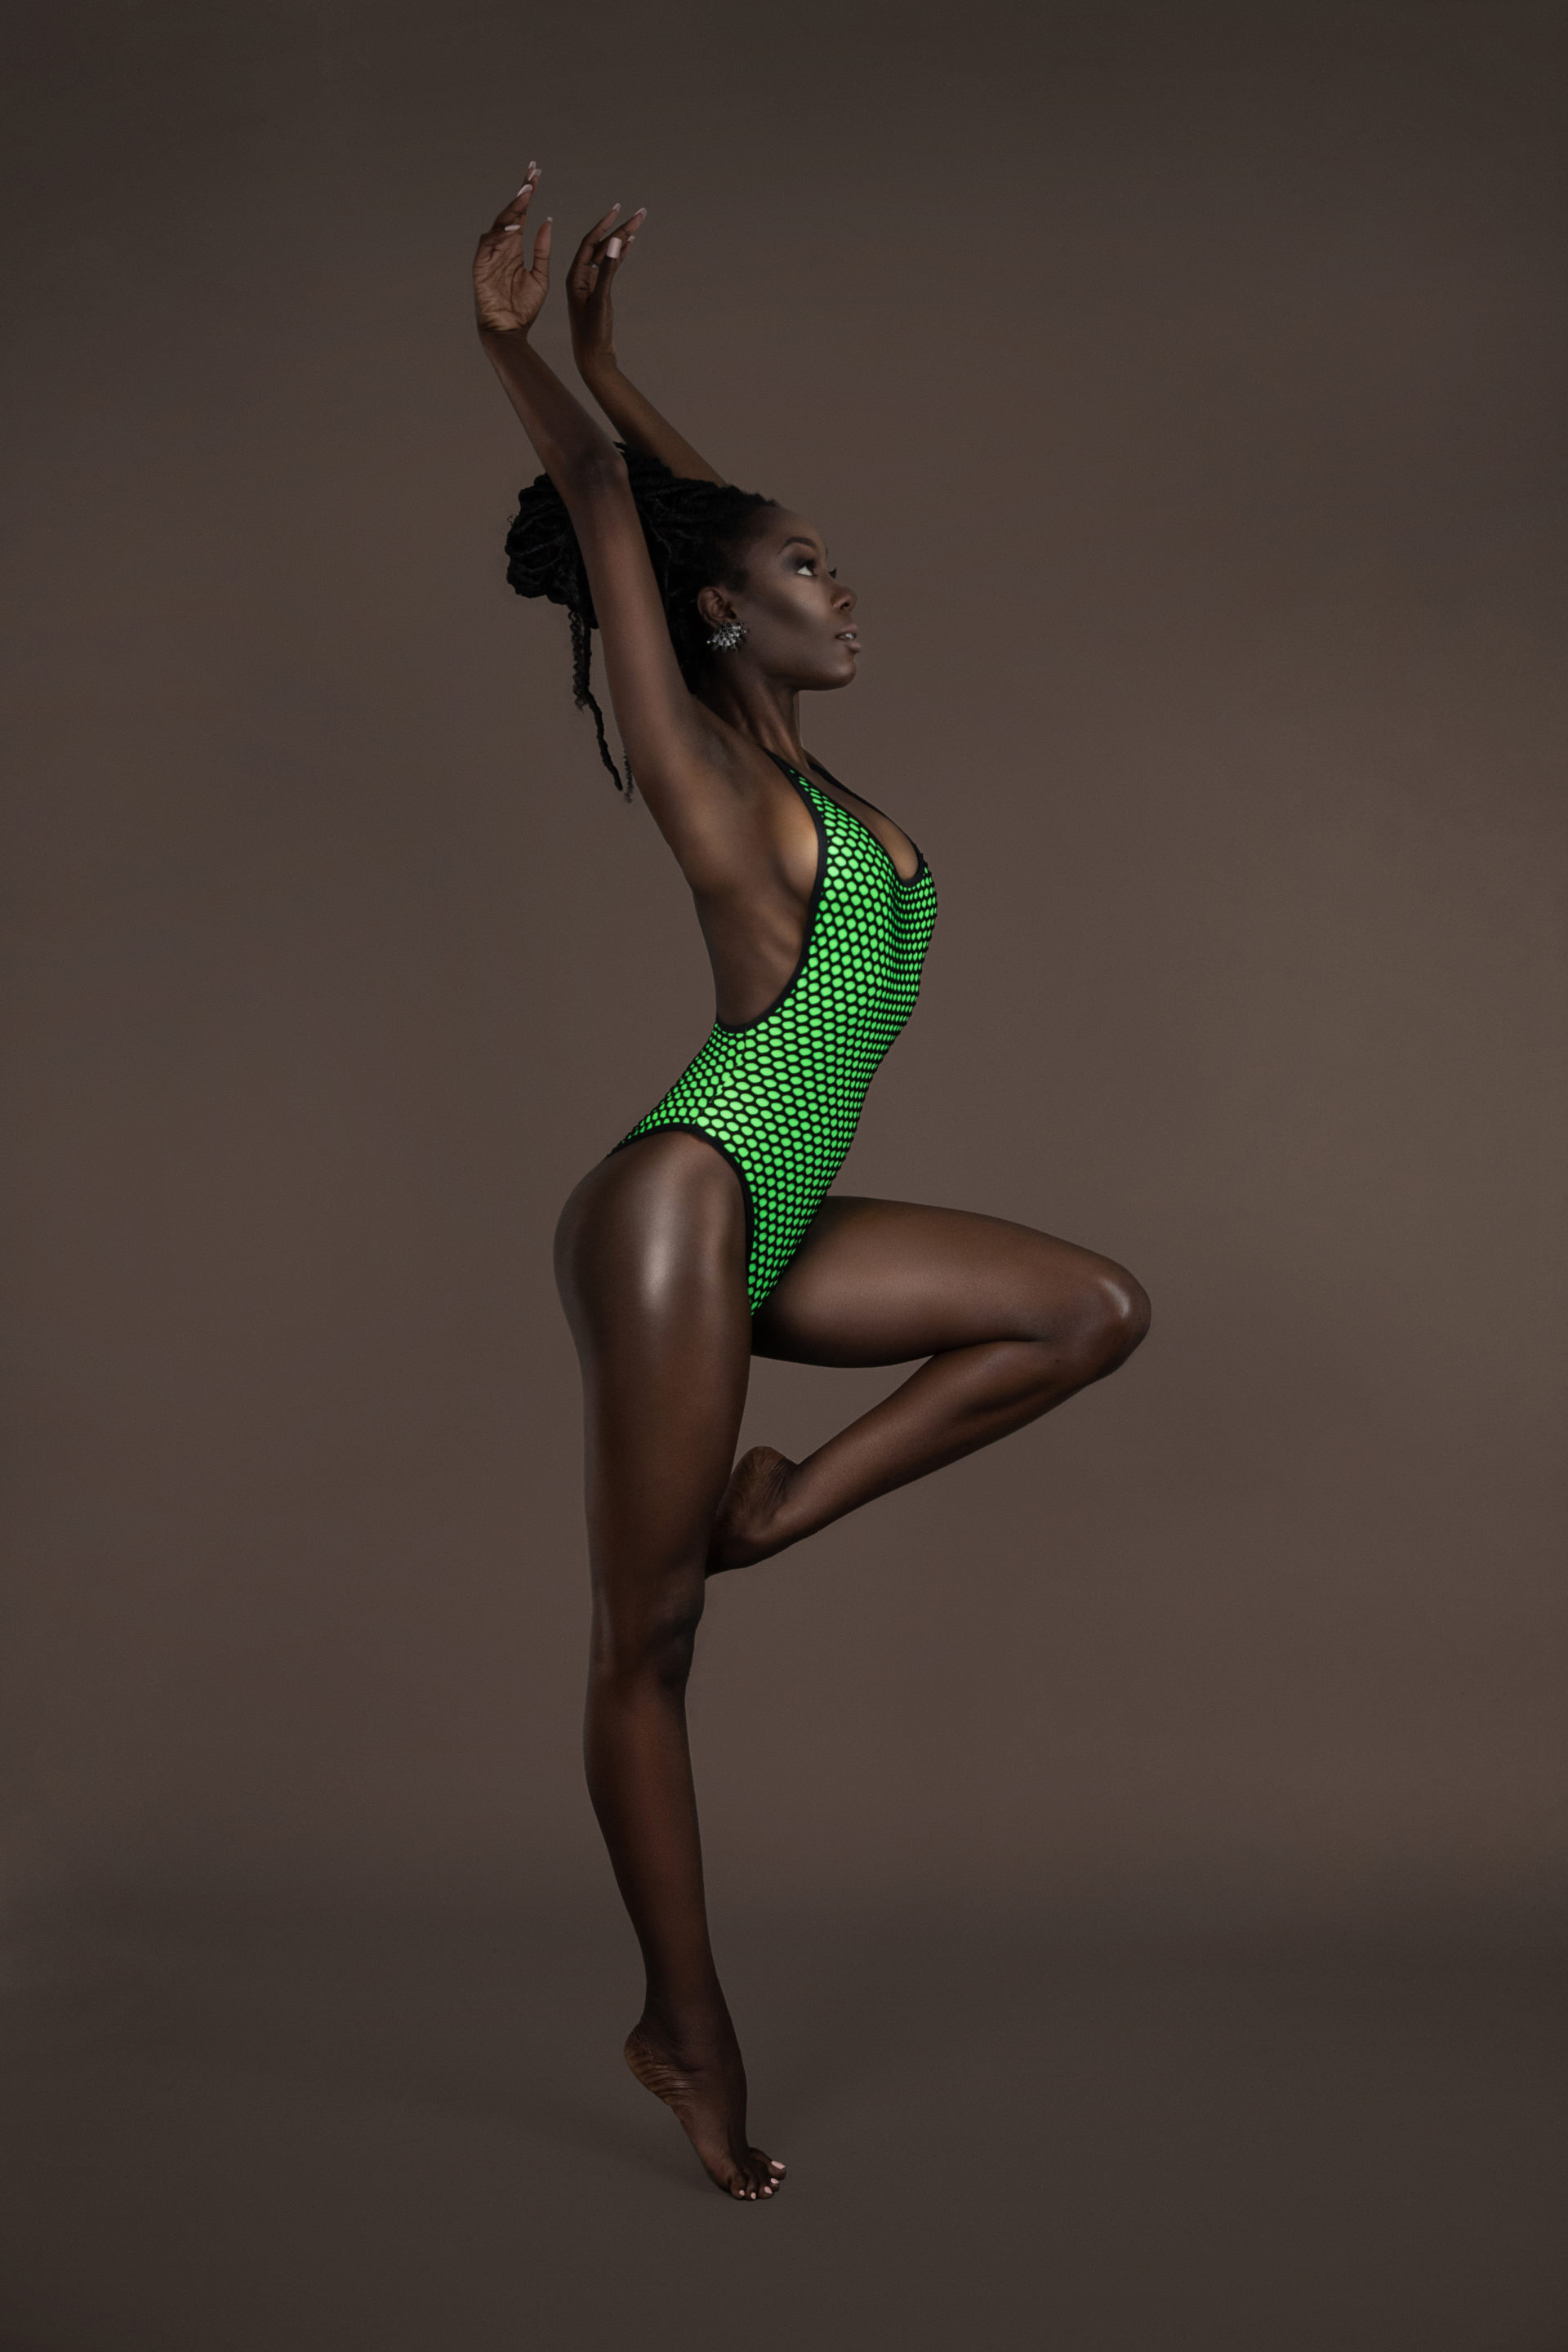 Dancing Black Lady In Green Bathing Suit